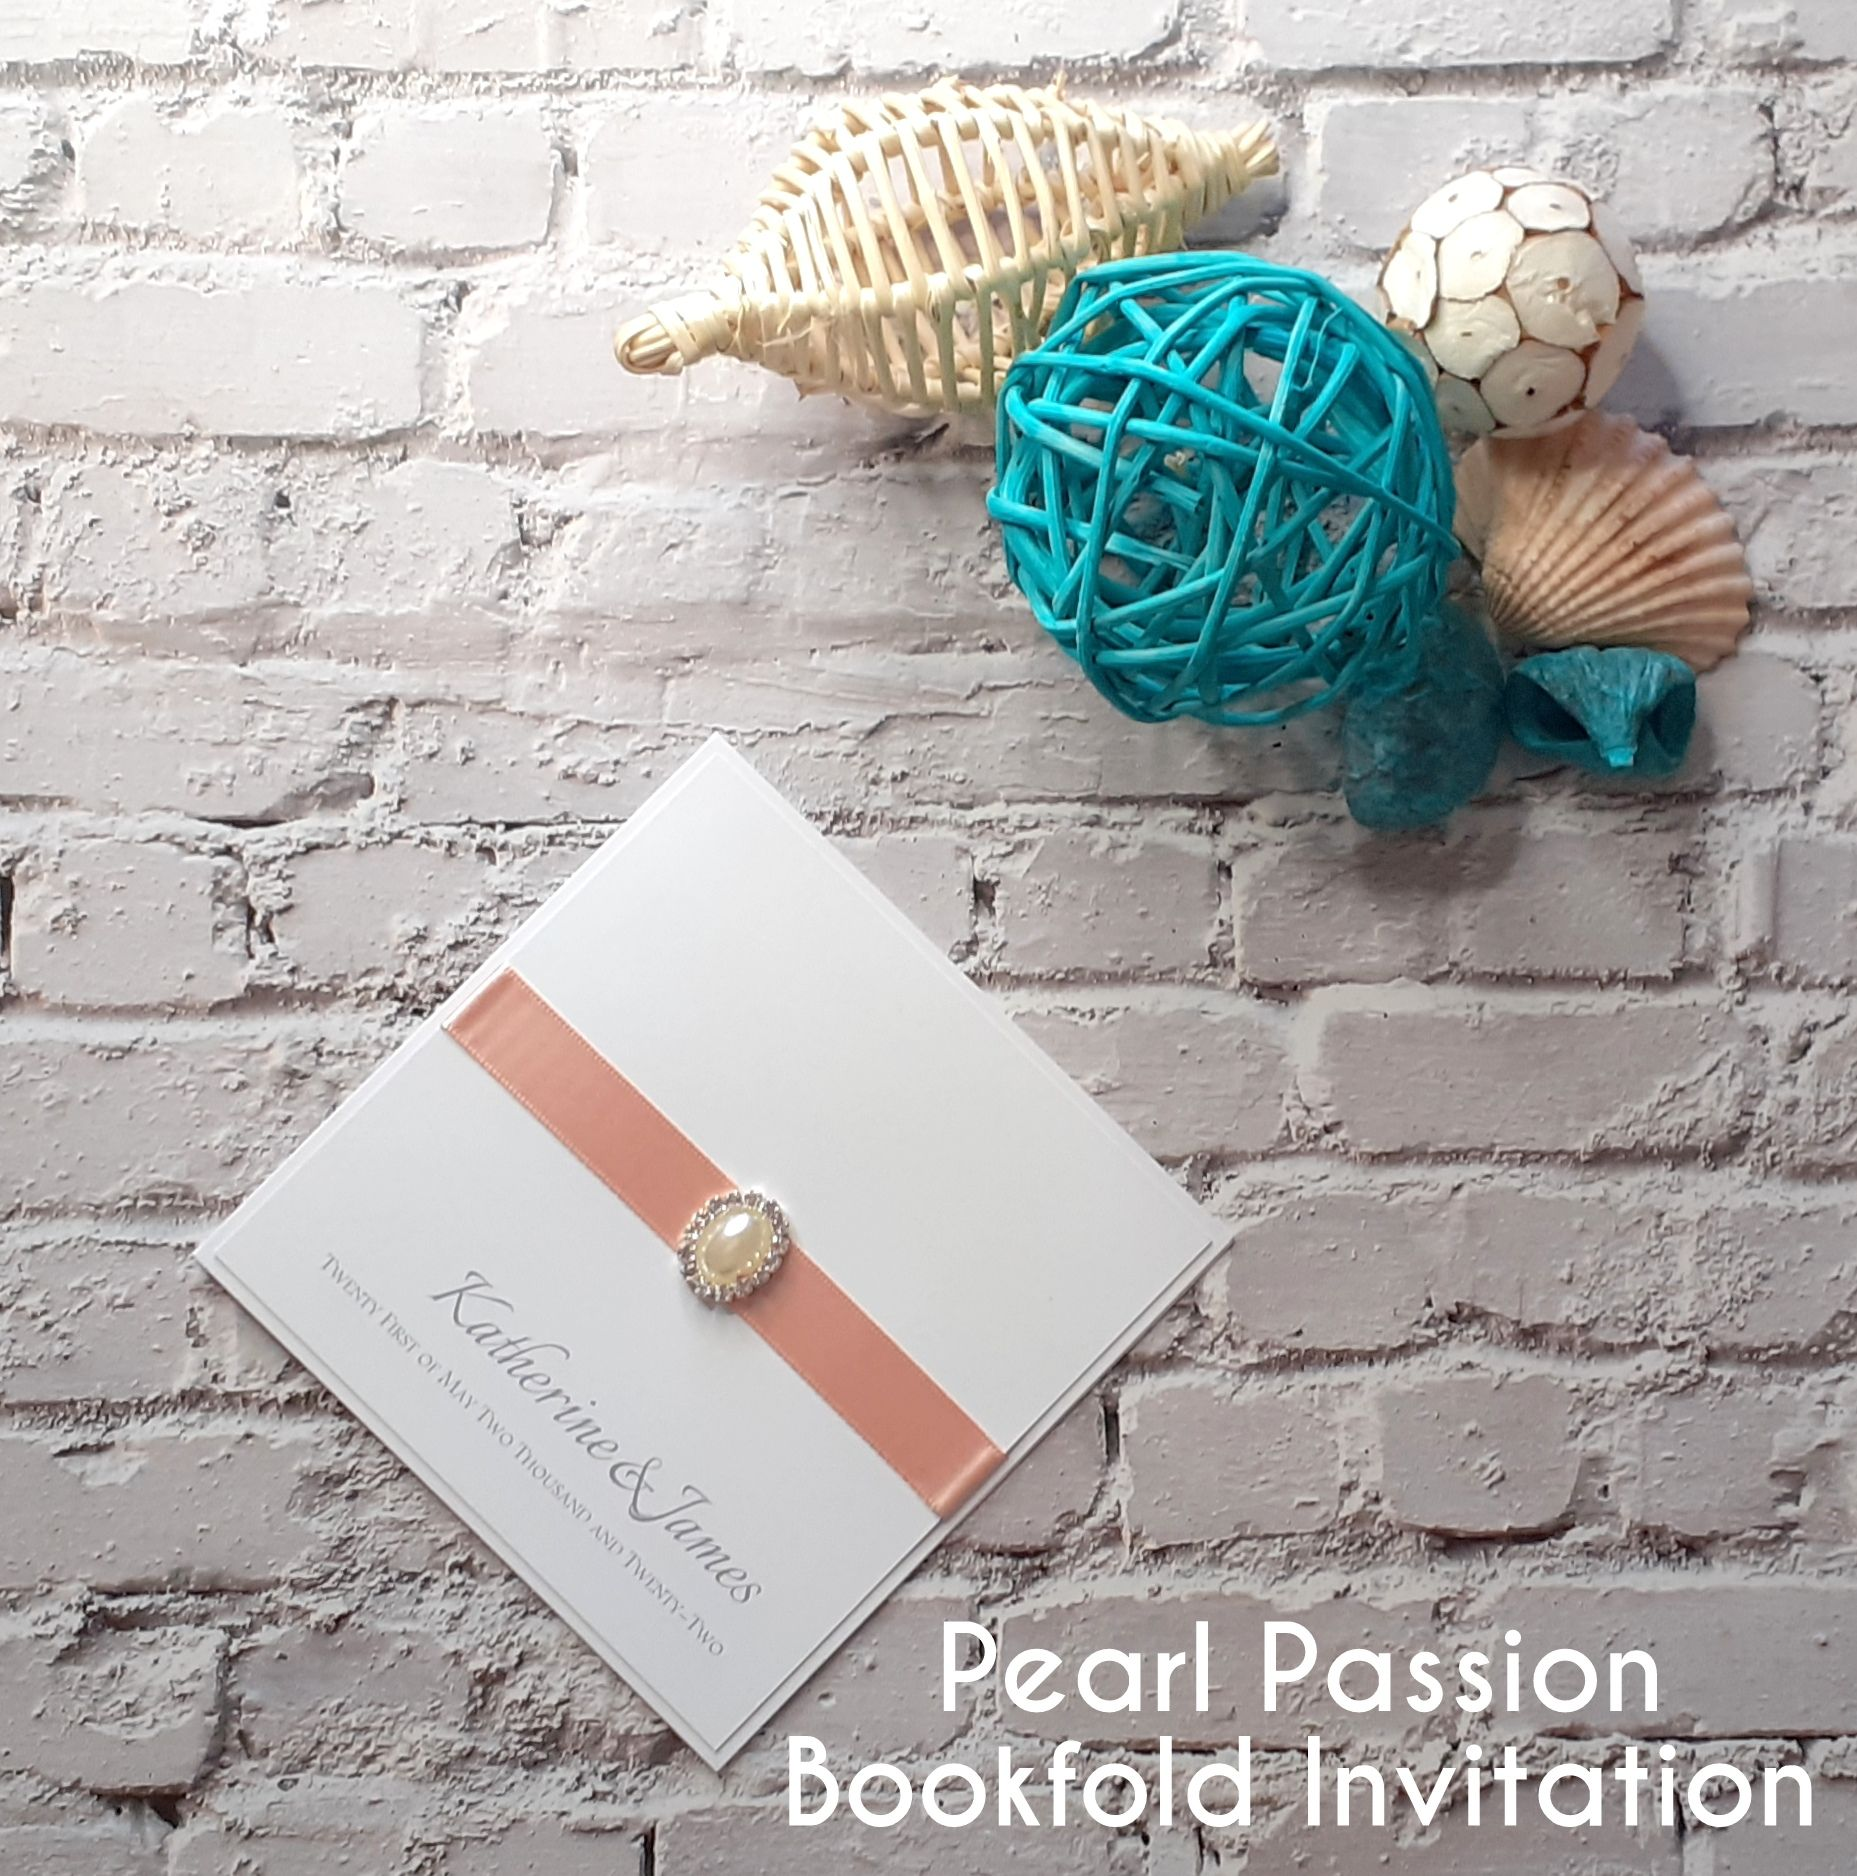 Pearl Passion Bookfold Invitation